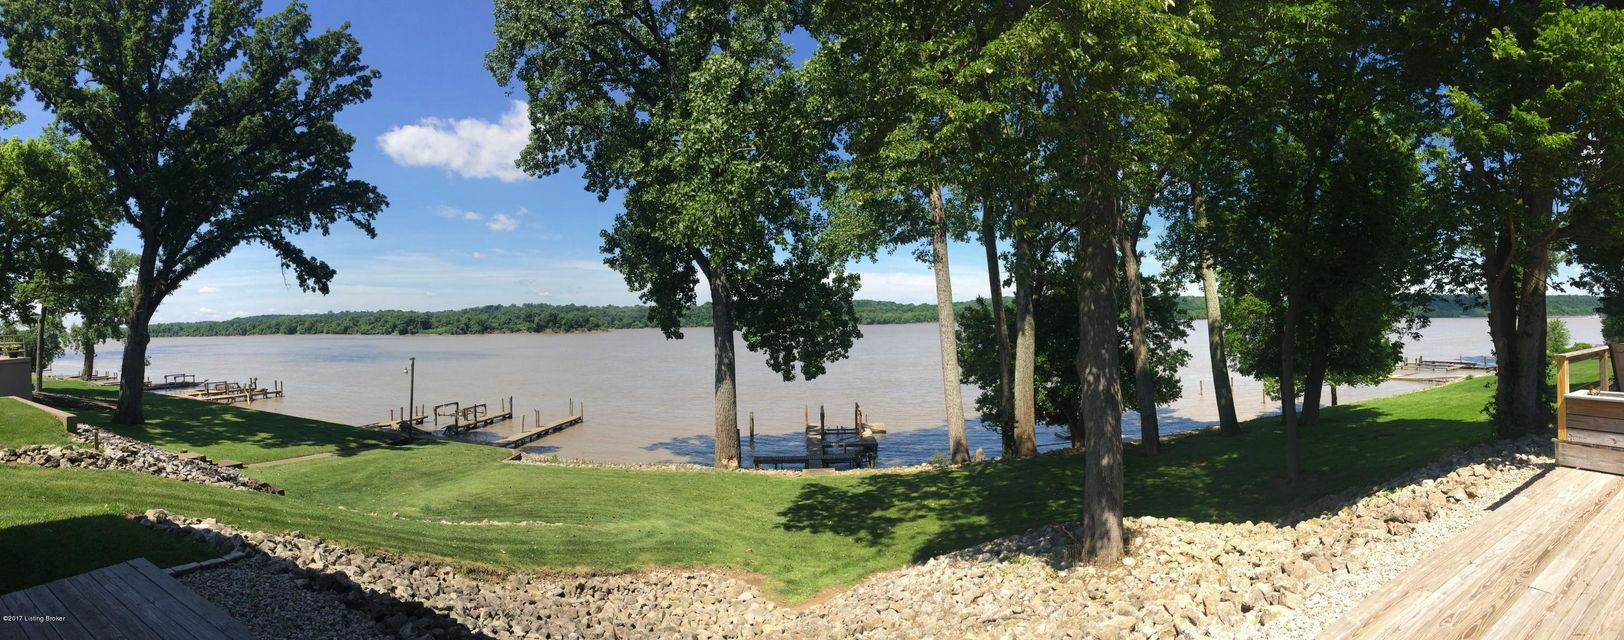 Additional photo for property listing at 2416 Belknap Beach Road  Prospect, Kentucky 40059 United States